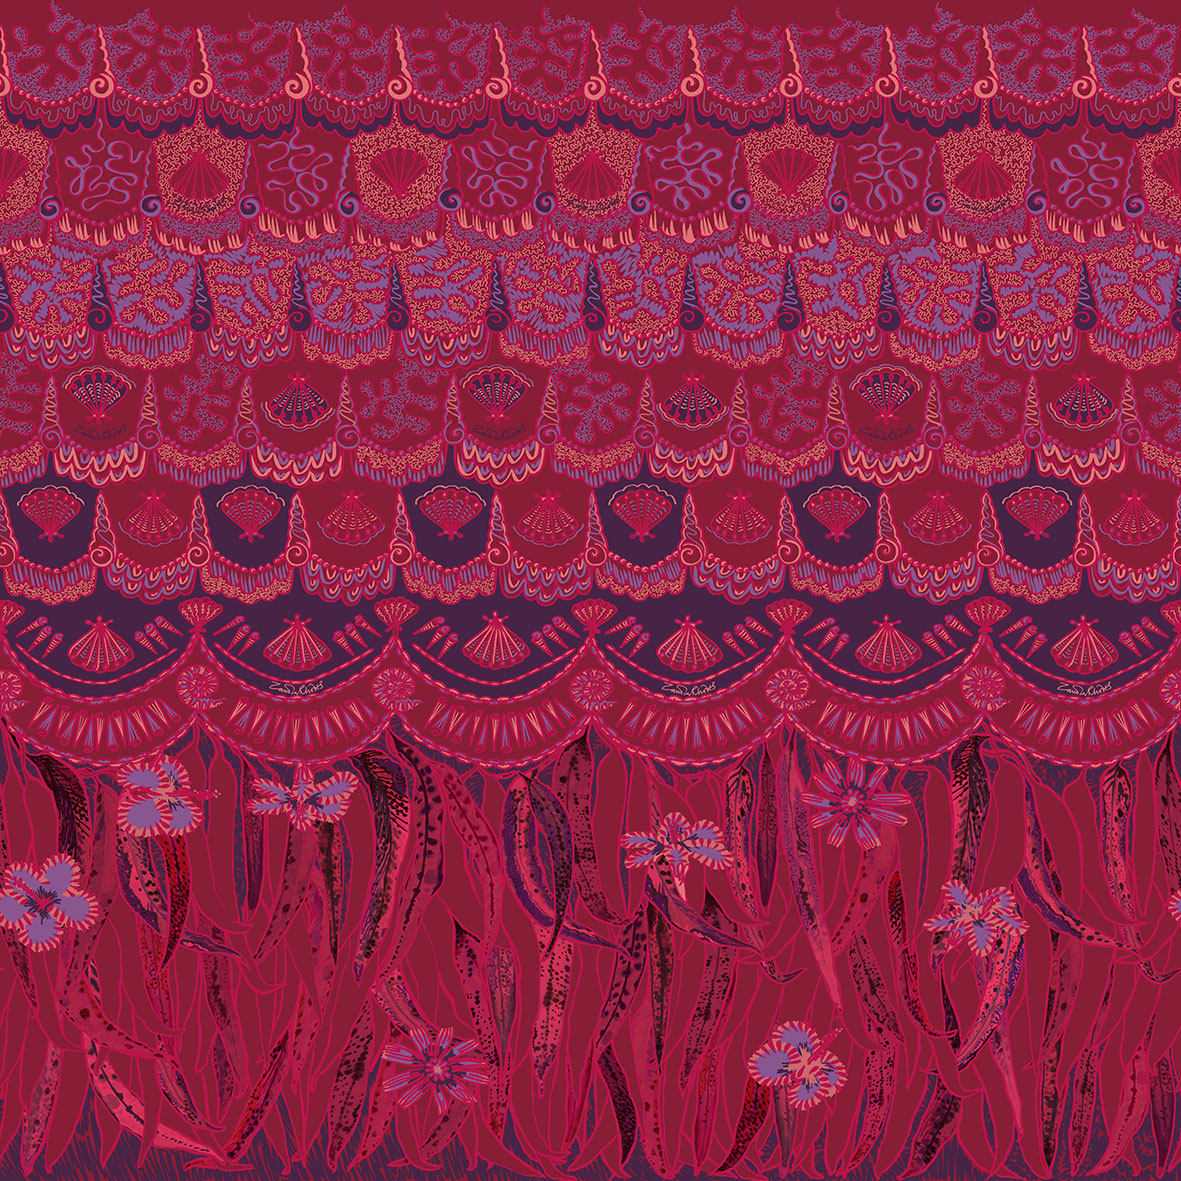 Textile print by Zandra Rhodes featuring feathers, shells and hibiscus © Zandra Rhodes, 2015